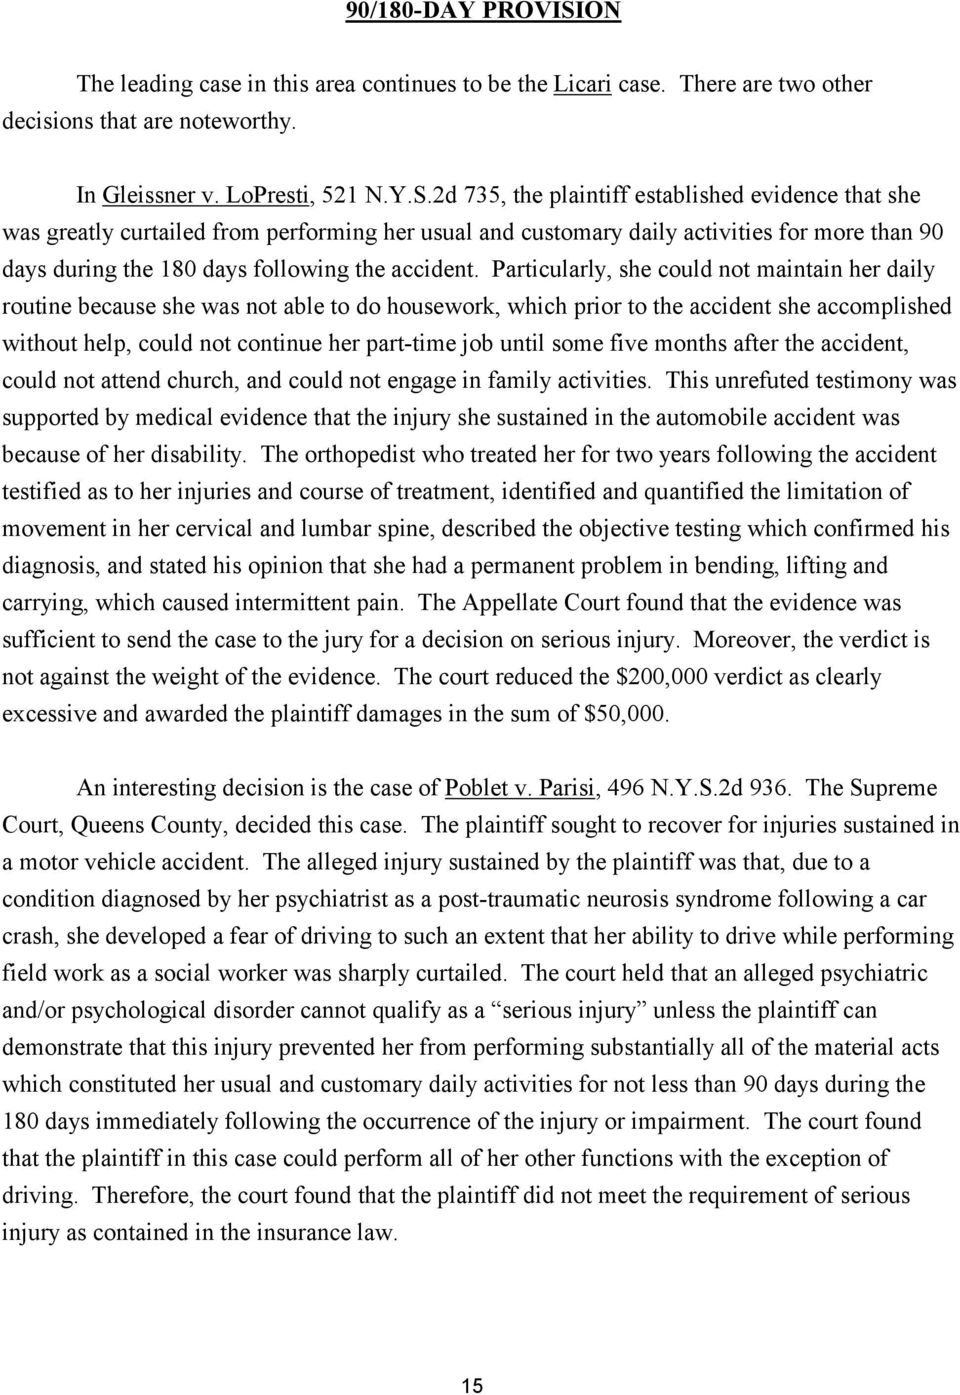 2d 735, the plaintiff established evidence that she was greatly curtailed from performing her usual and customary daily activities for more than 90 days during the 180 days following the accident.